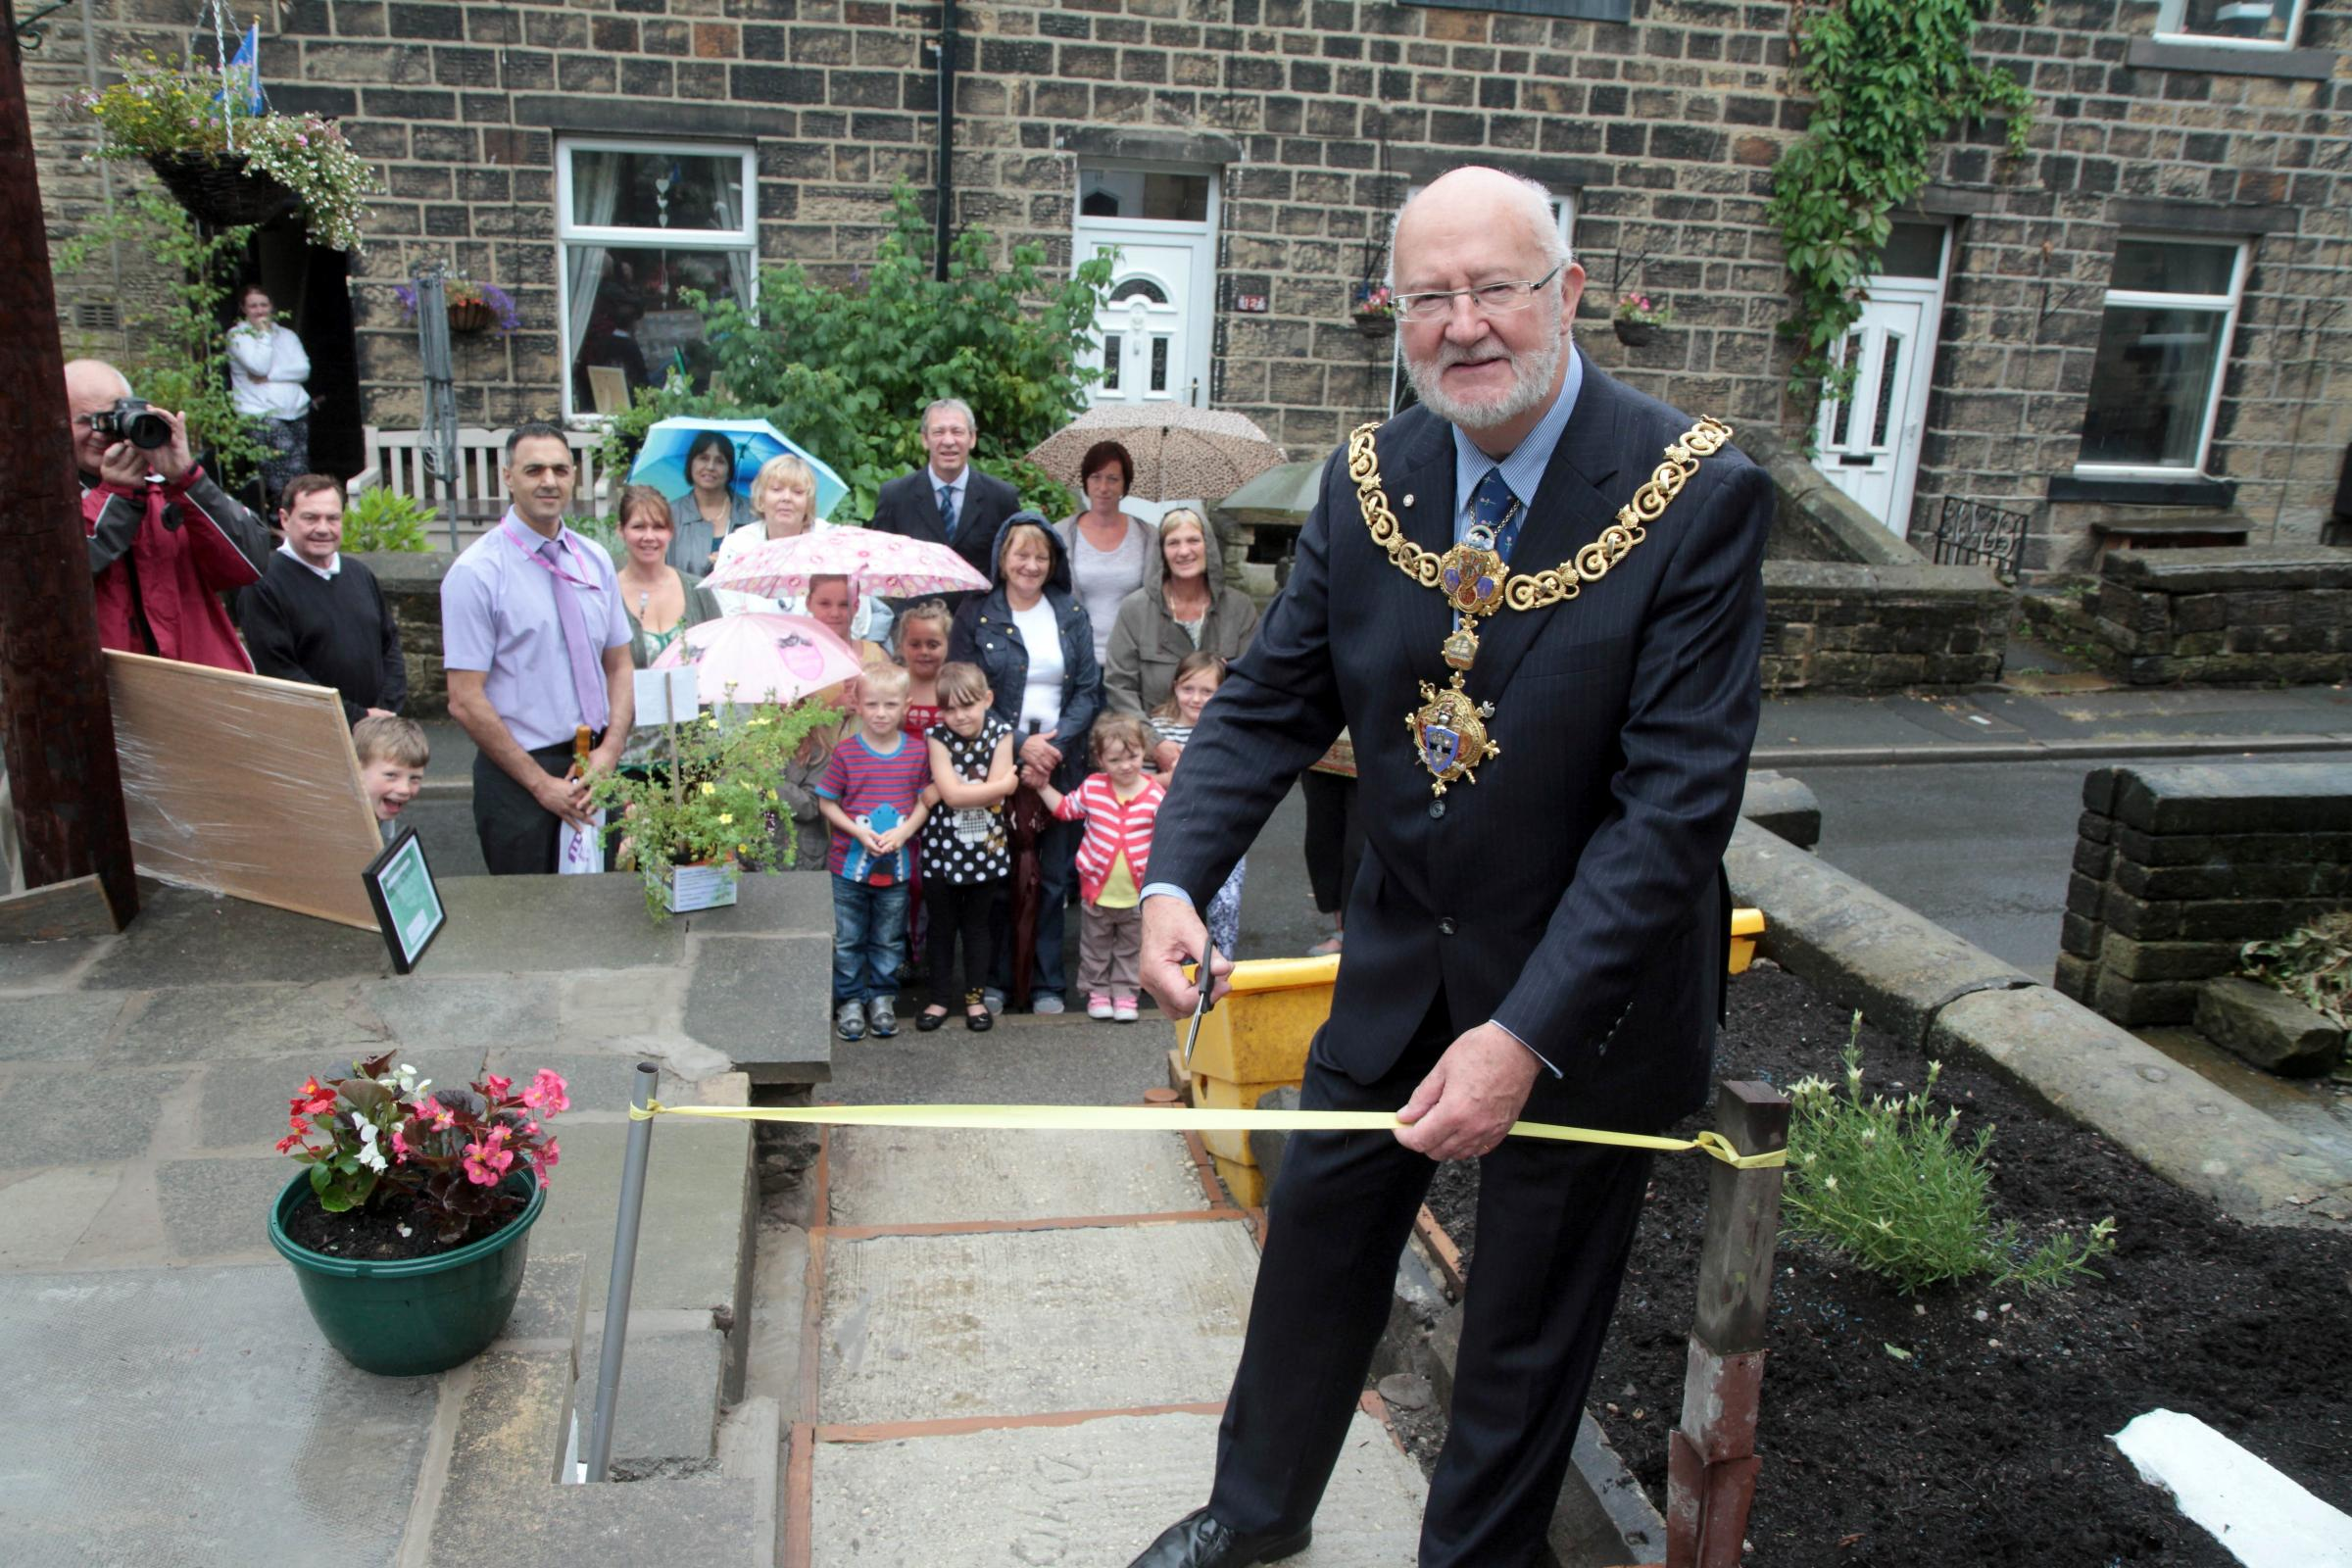 Thwaites Brow footpath reopened following clear-up